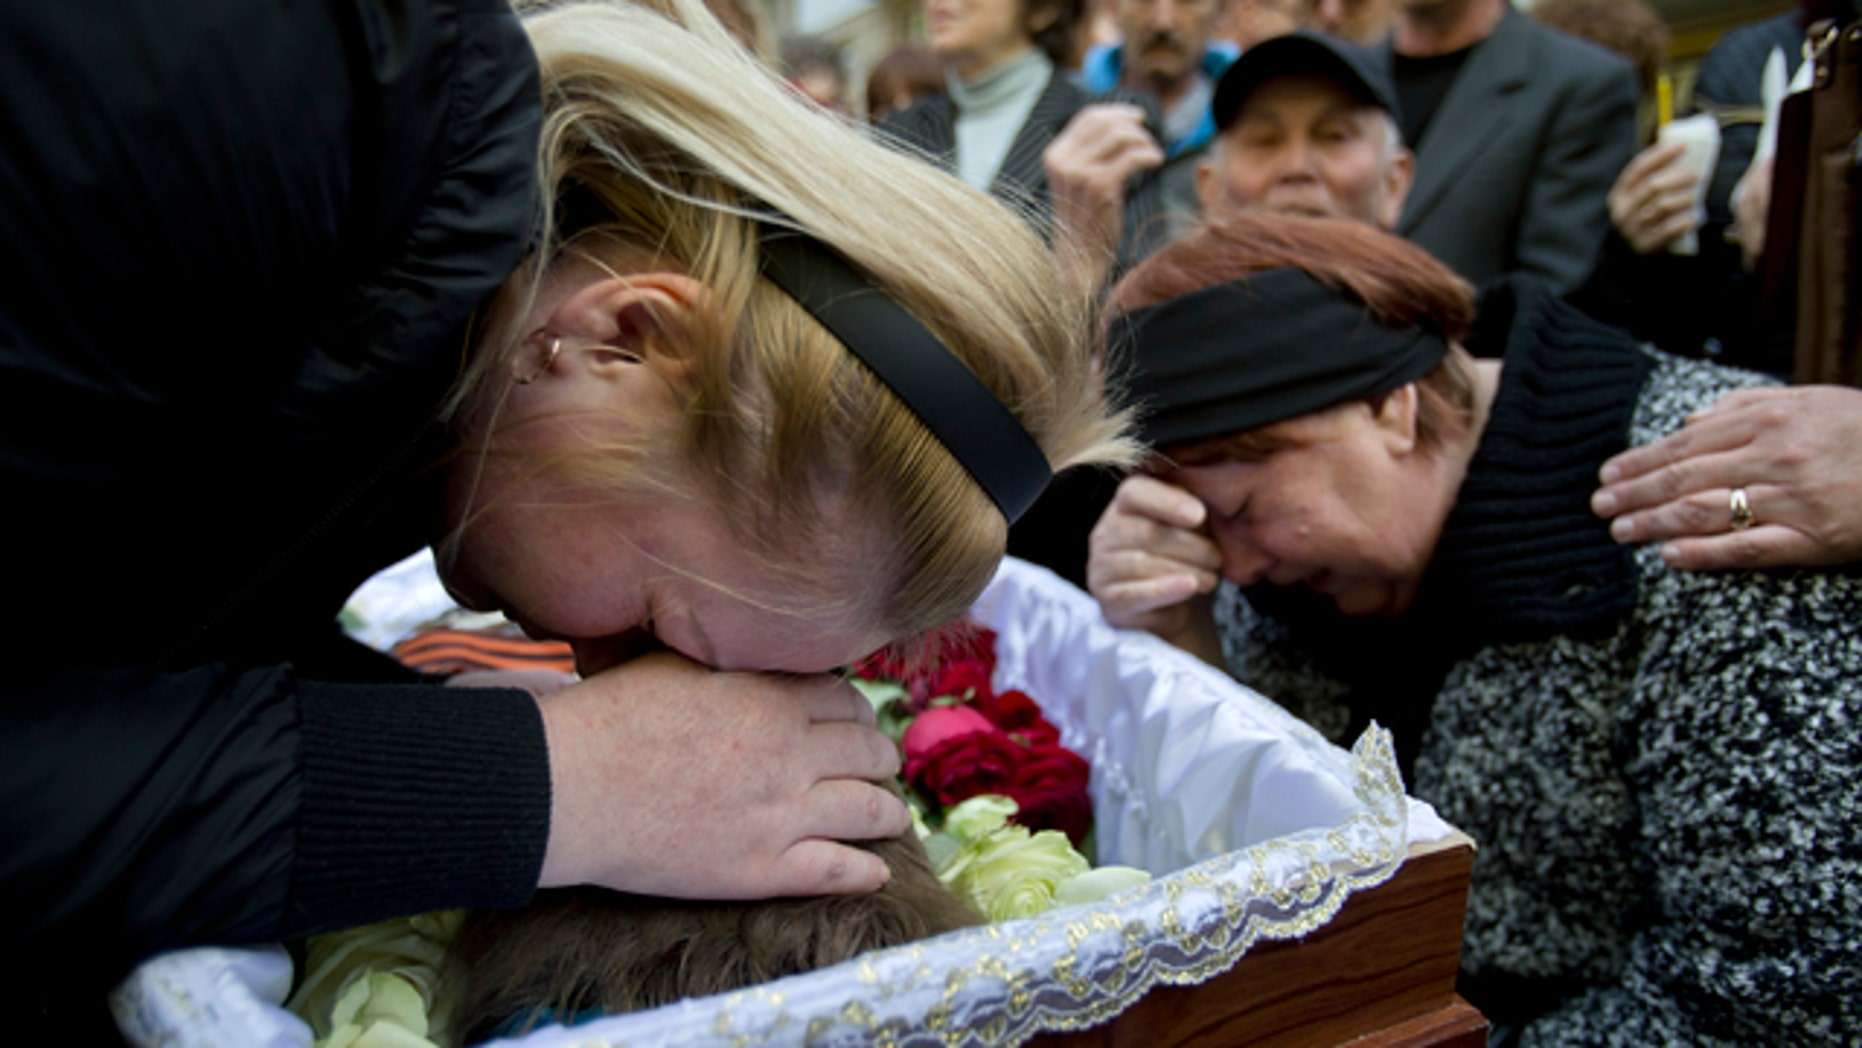 May 6, 2014: Relatives cry around the coffin of 17 year-old Vadim Papura during a religious service outside his apartment block, in Odessa, Ukraine. Papura died after jumping out of the trade union building in an attempt to escape a fire that killed most of the 40 people that died after riots erupted last Friday. (AP Photo/Vadim Ghirda)